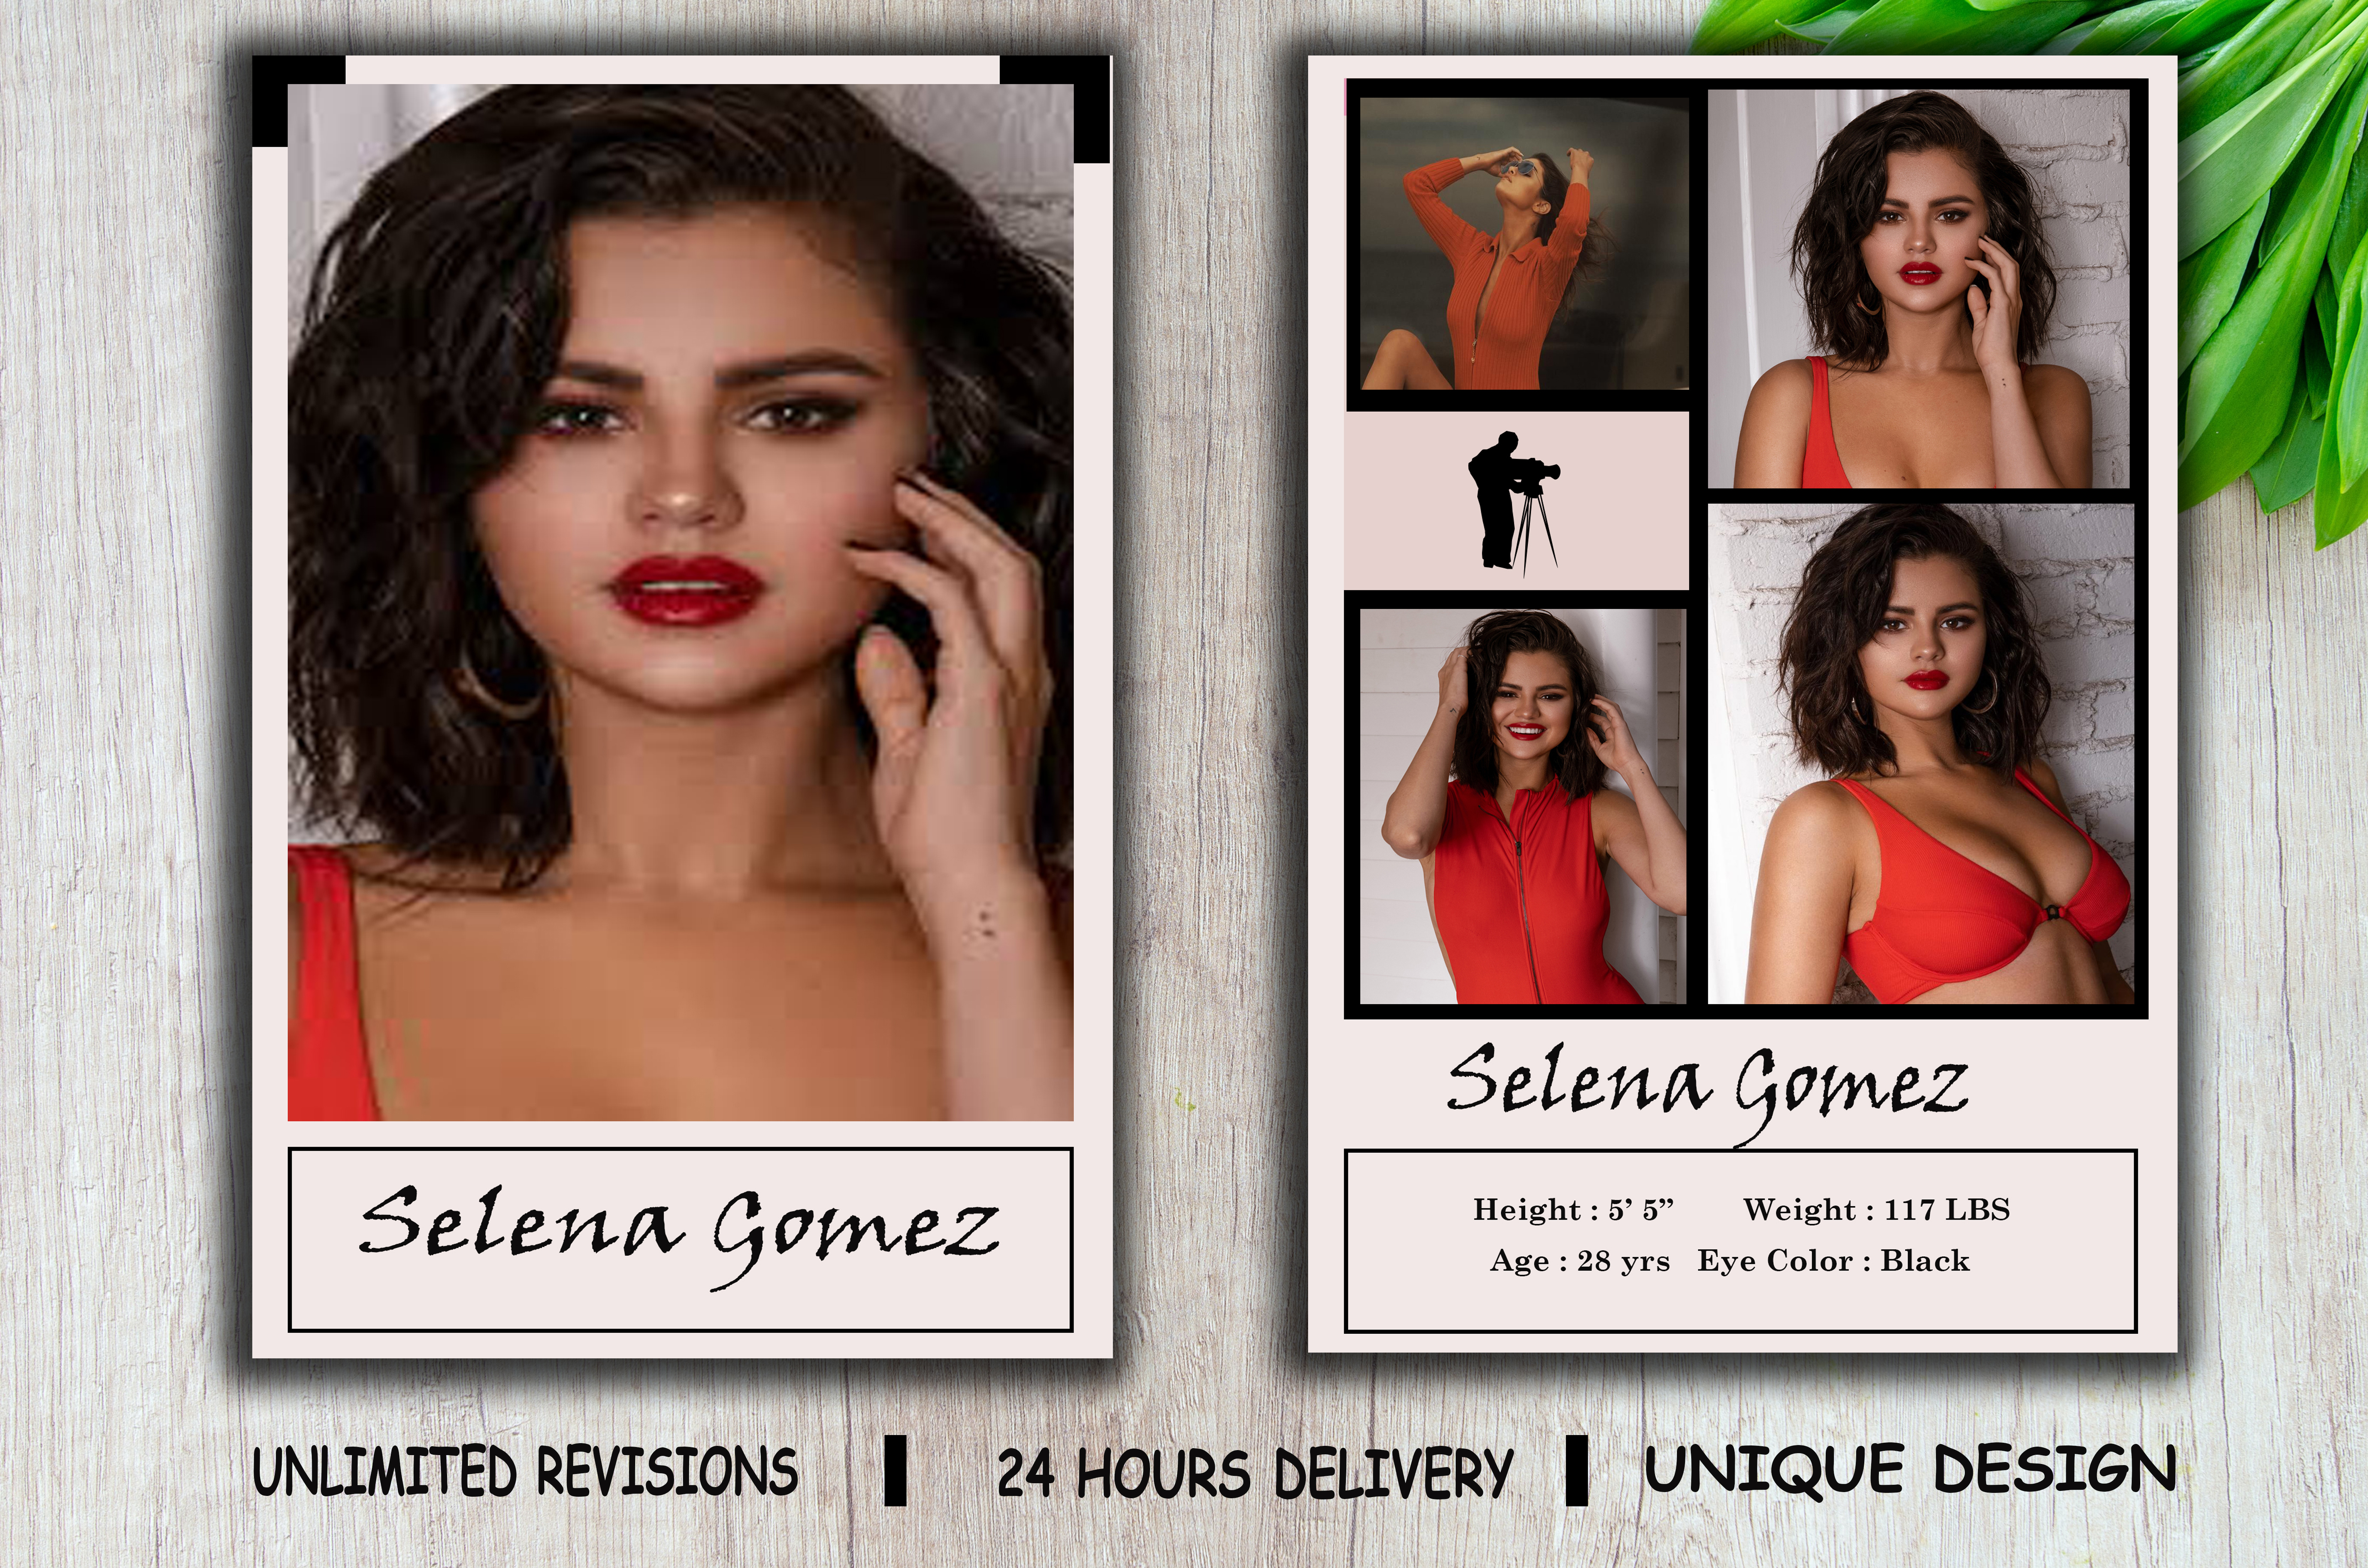 I will design professional model comp card within 24 hours